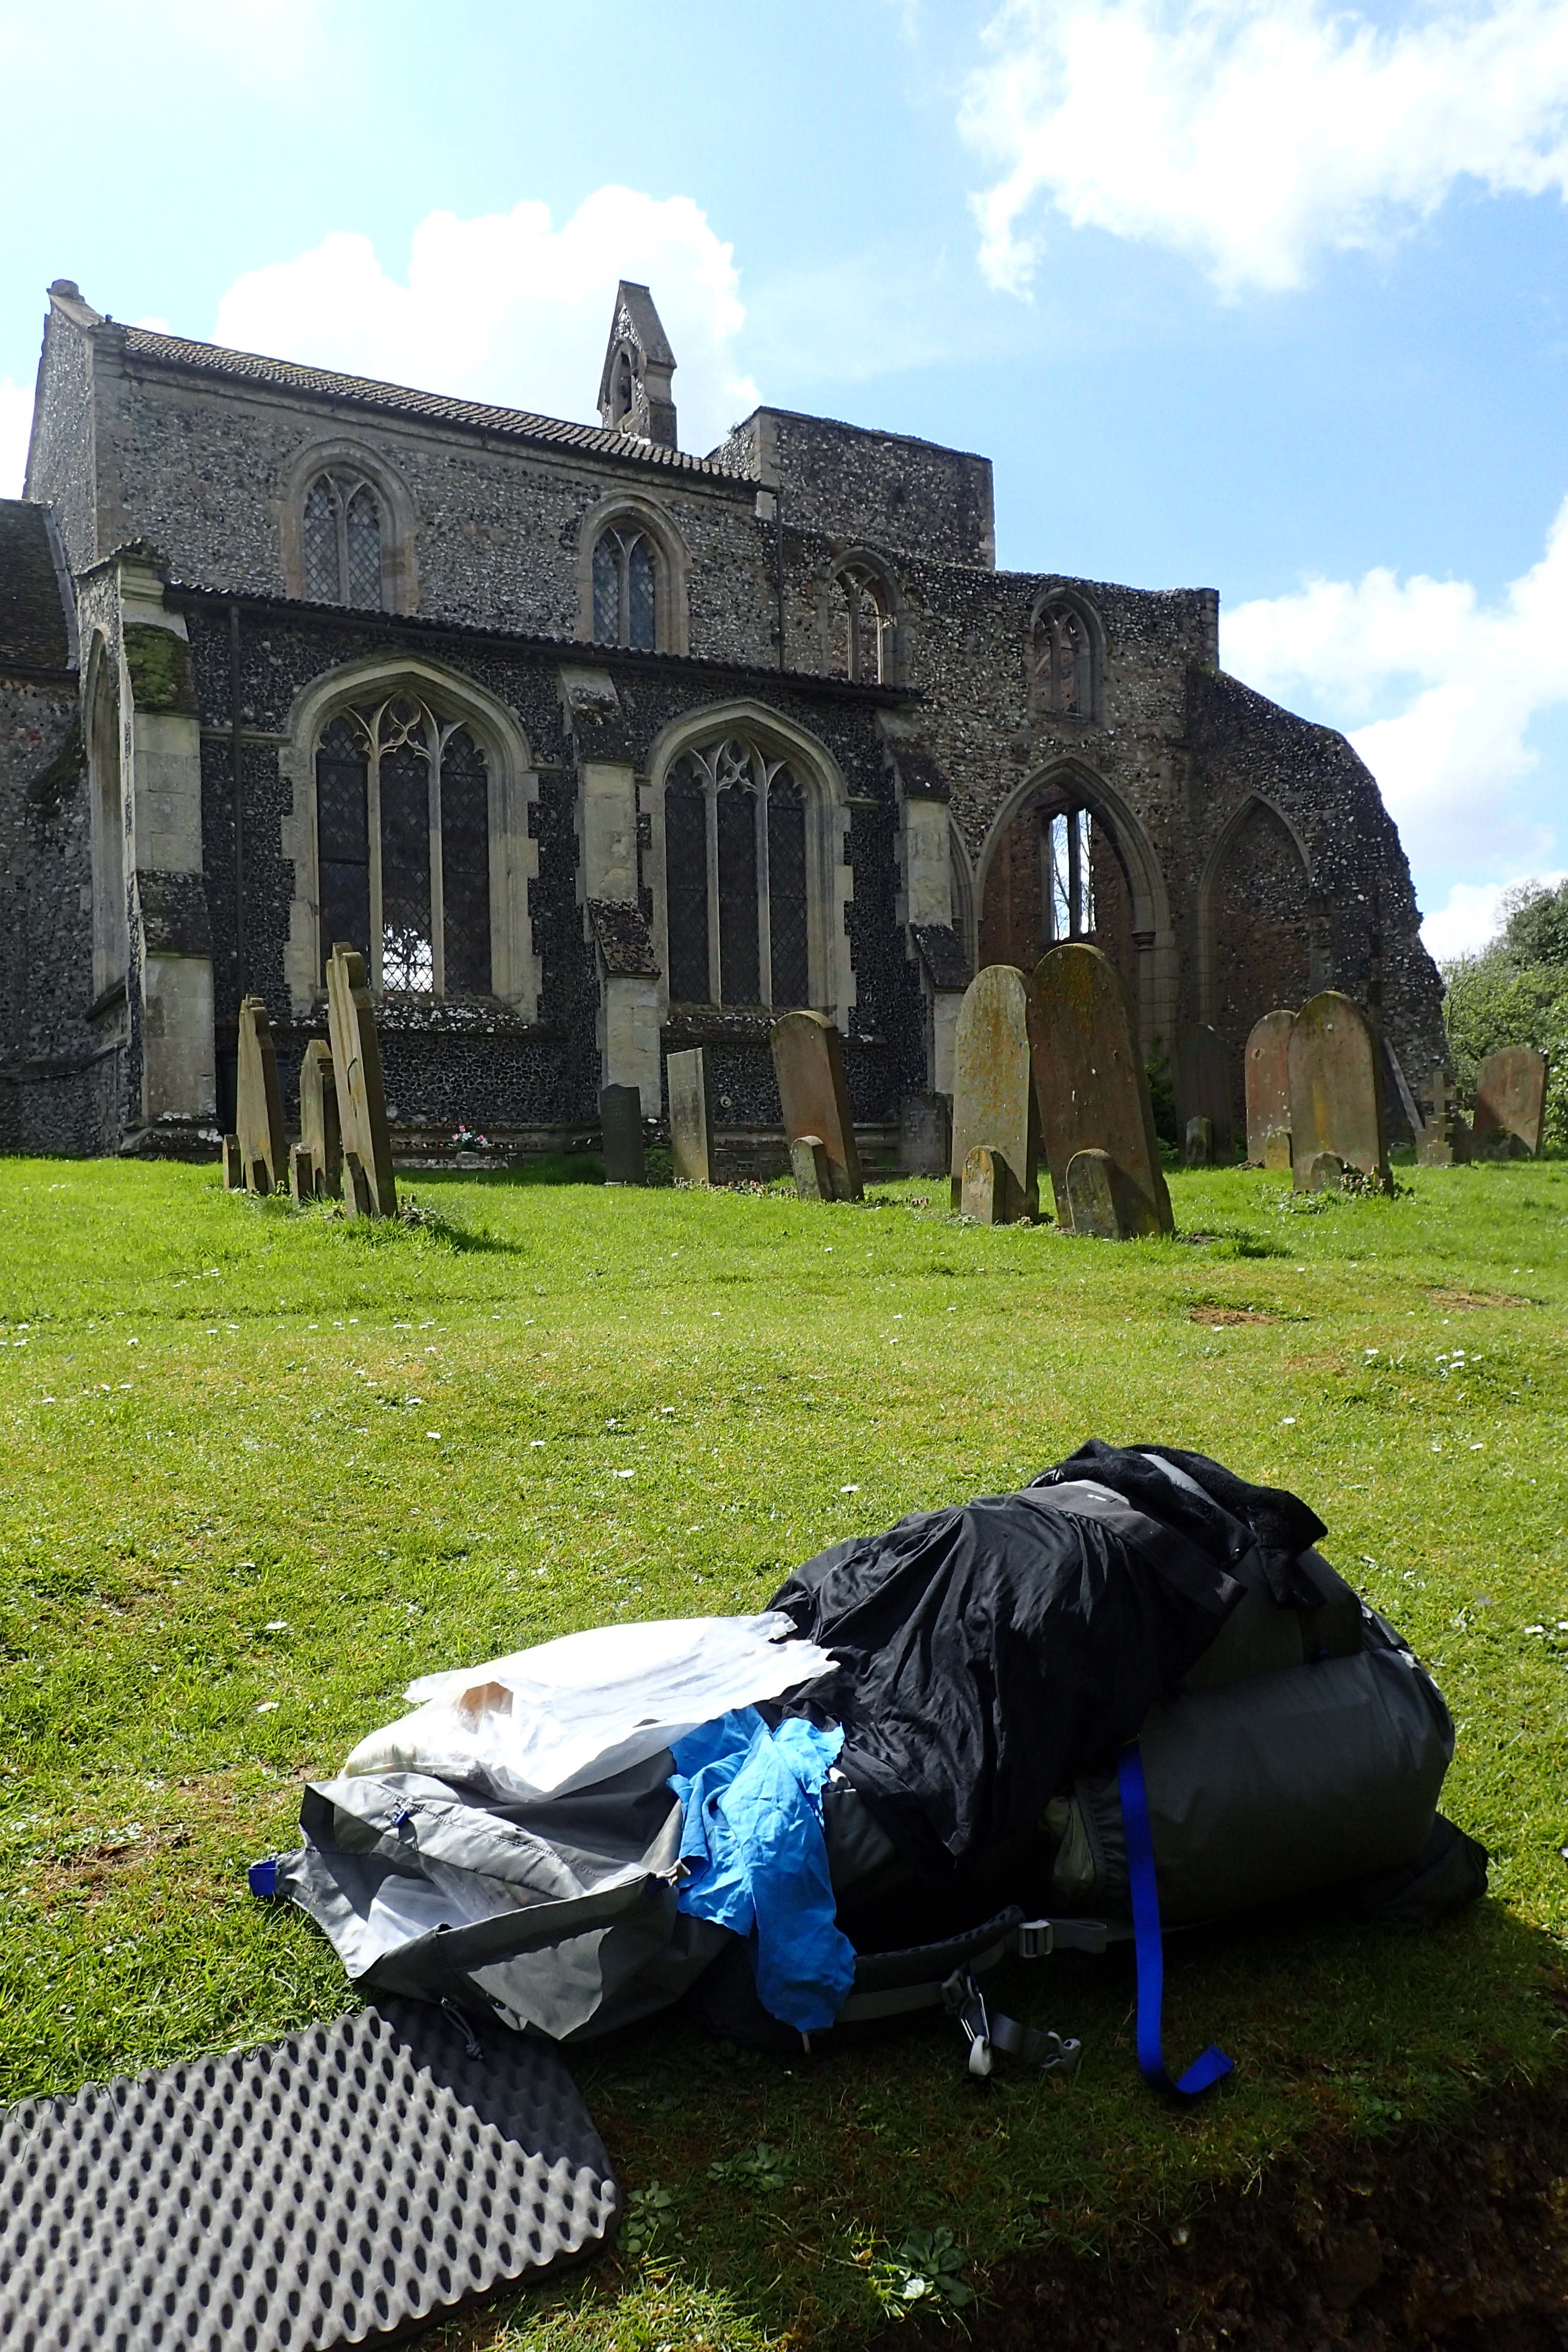 Lunch stop at St. Andrew's Church, the south west tower fell in 1781 and lies in ruins, but the church is still in use